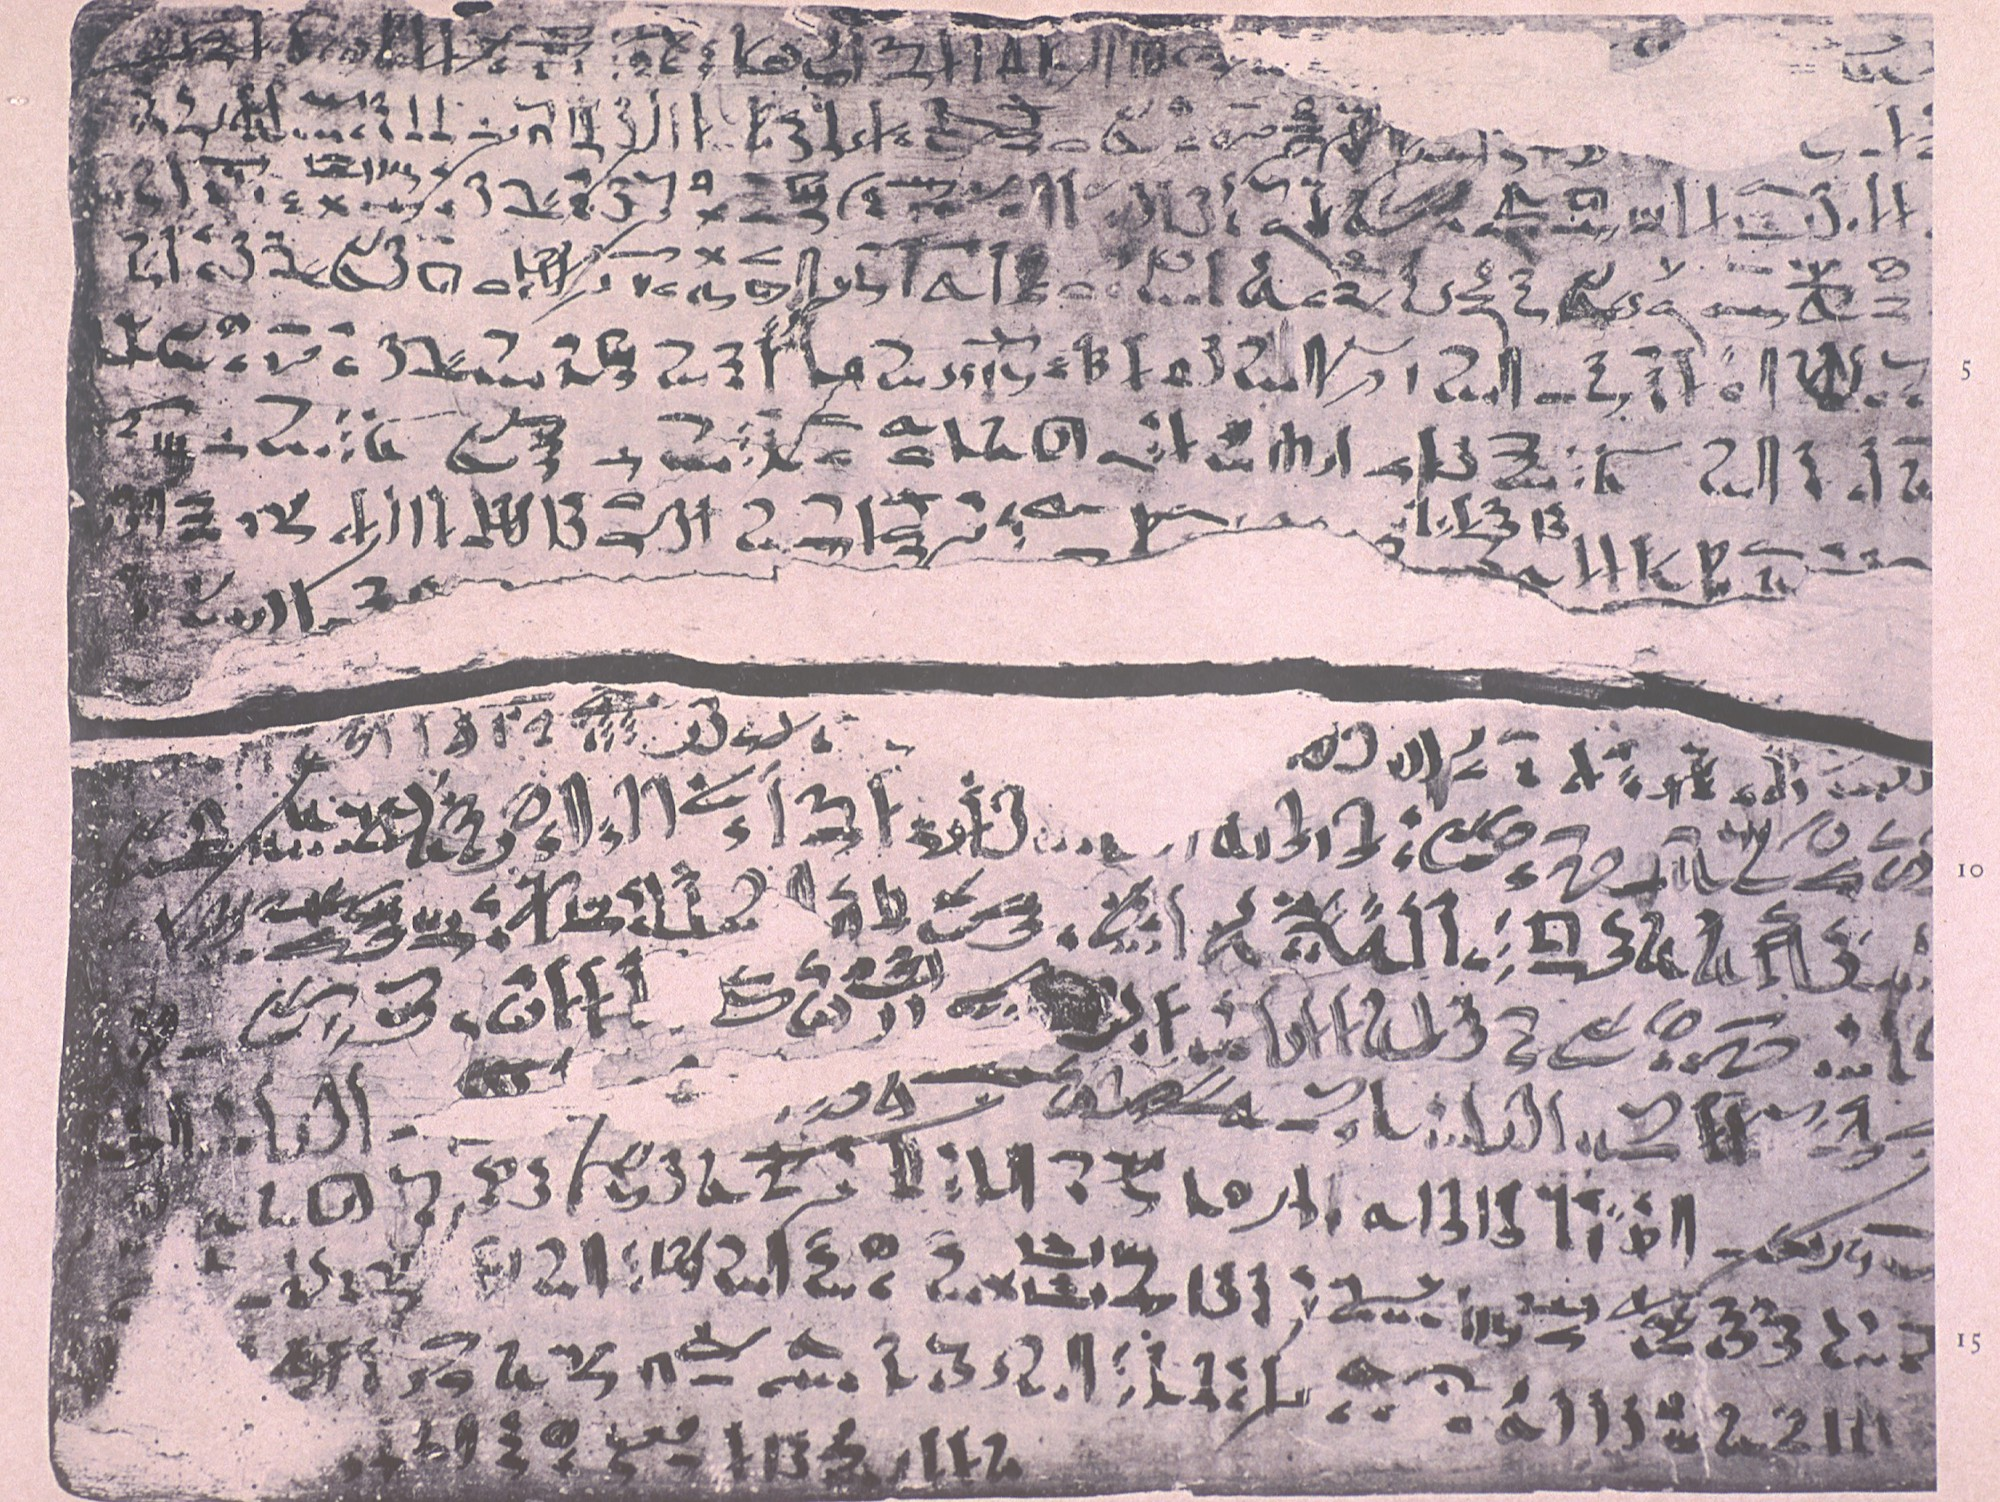 The Carnarvon Tablet I, found in Al Asasif, describes the successful battle of Theban King Kames against the Hyksos.